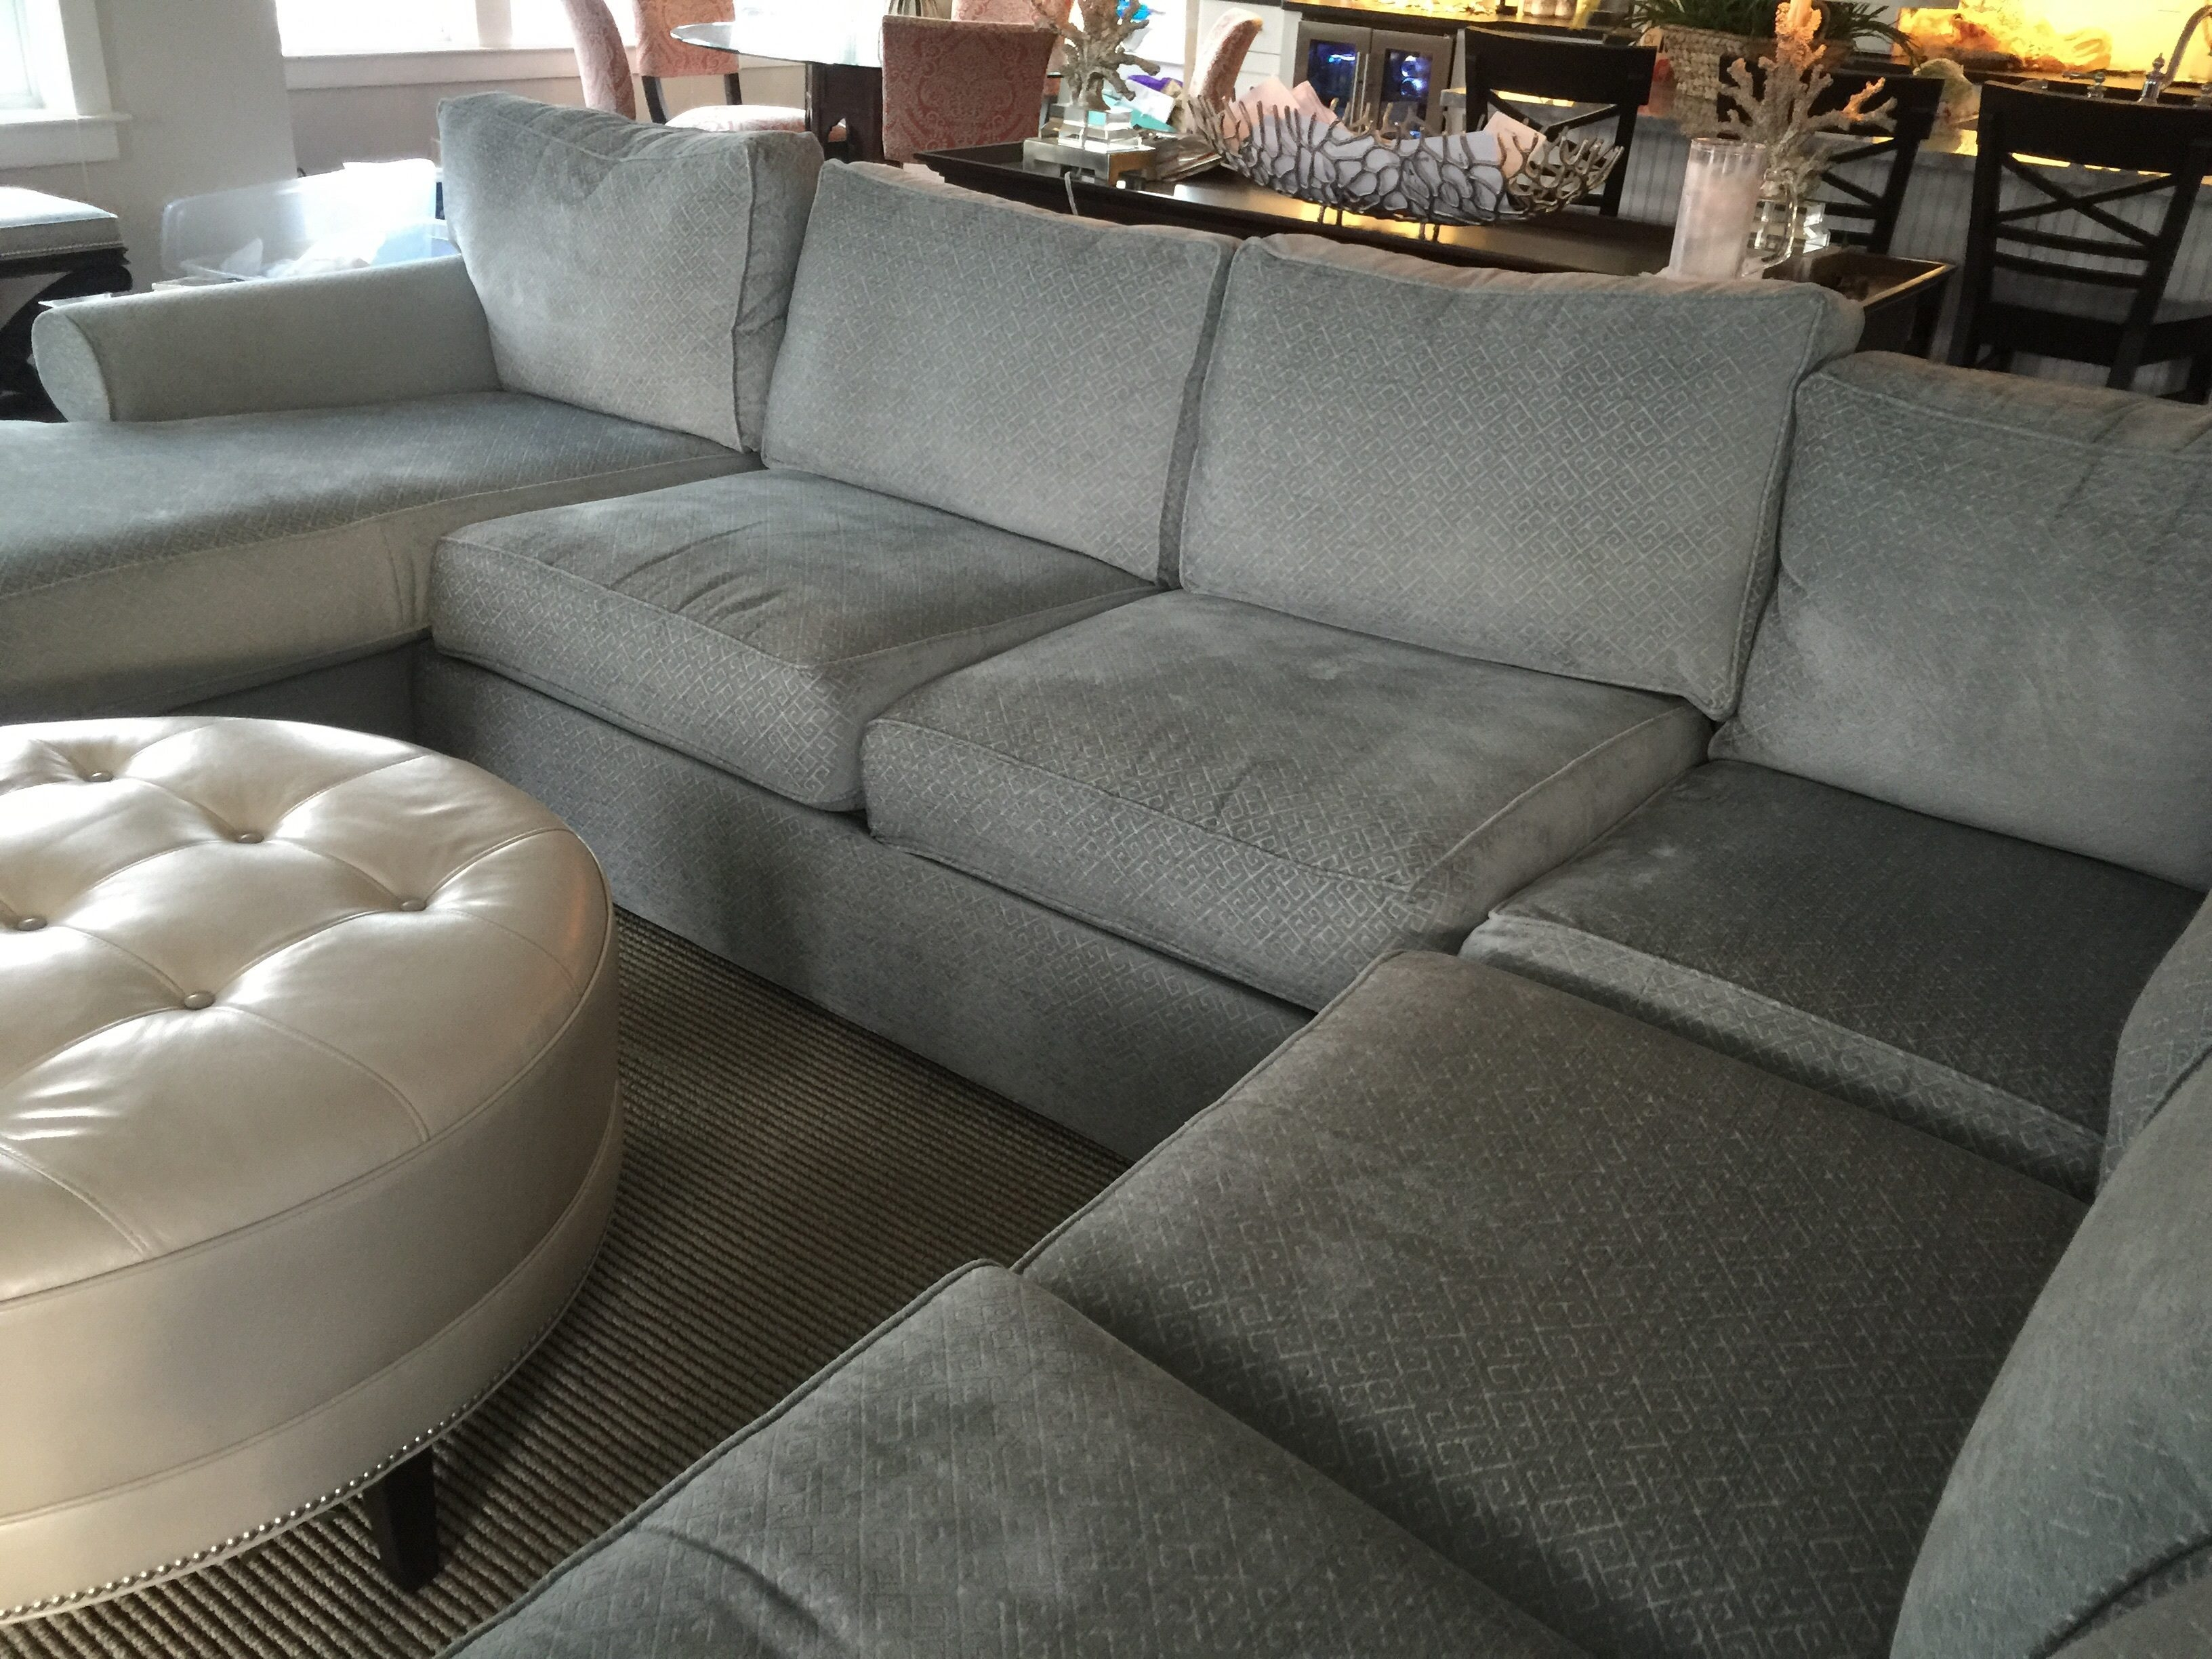 Decor Grey Sectional Sofa Craigslist West Palm Beach Furniture In Craigslist Sectional Sofa (Image 6 of 15)